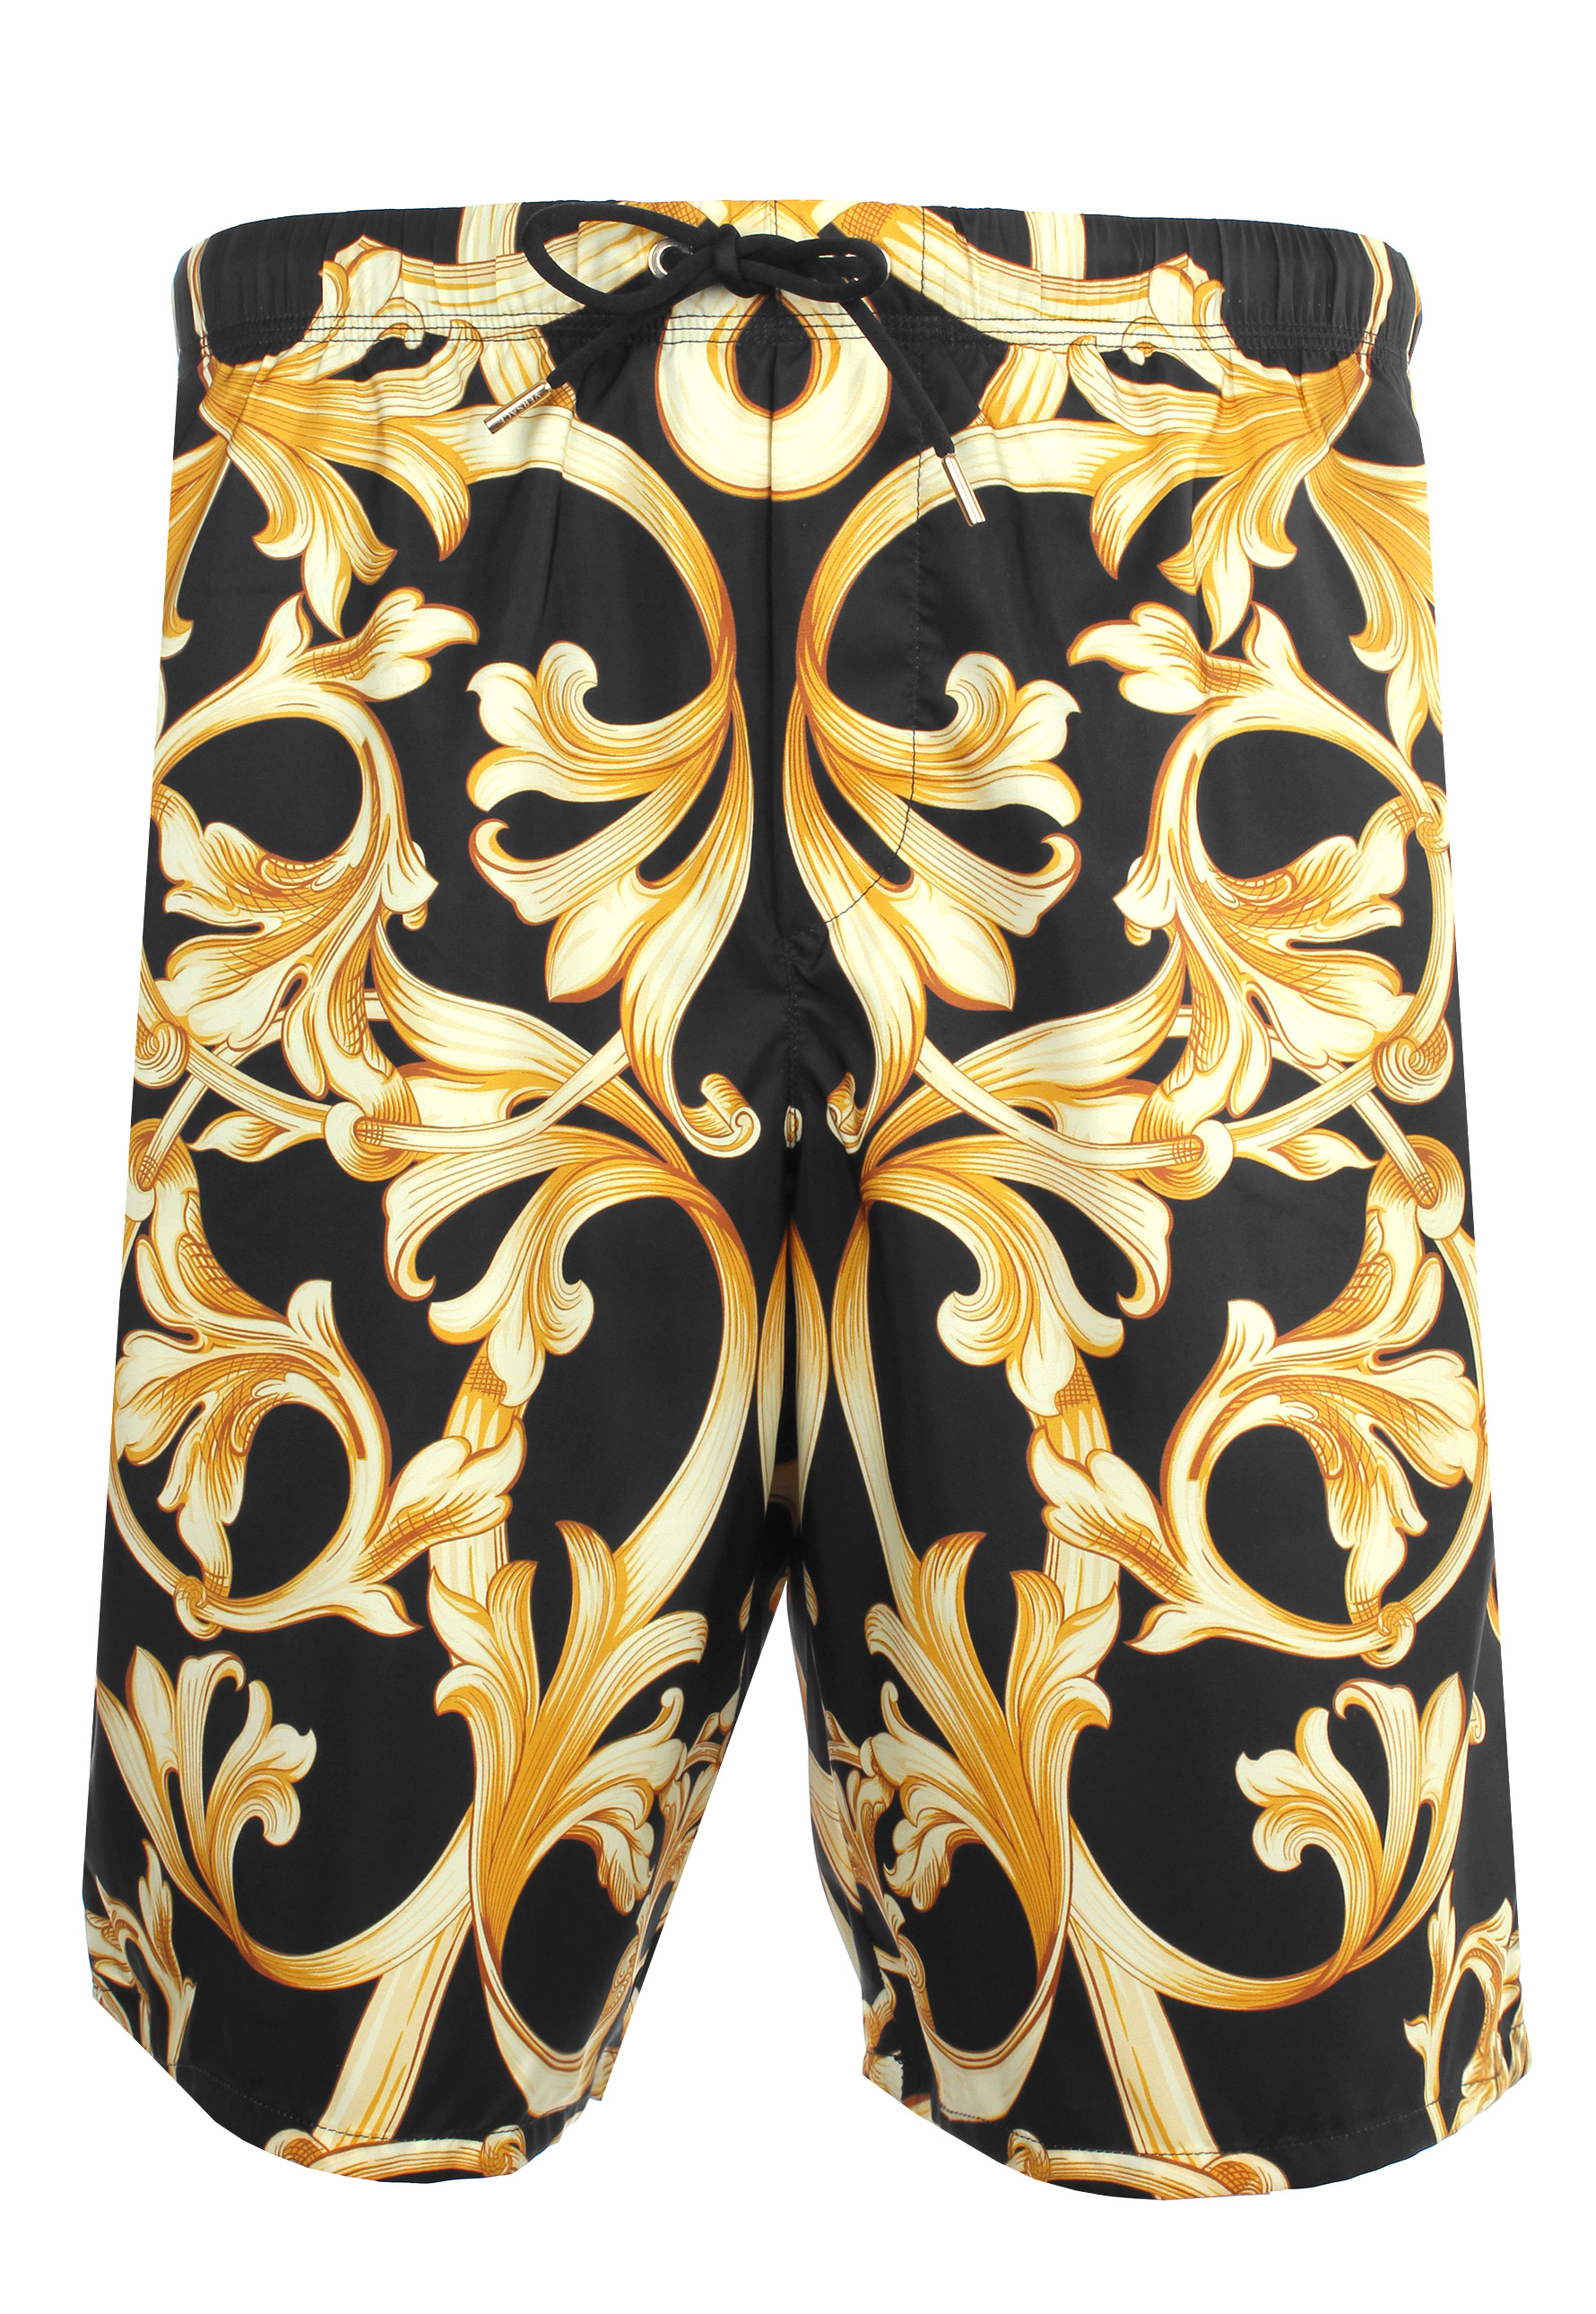 a2302ae793 Versace Baroque Print Long Swimming Shorts Black/gold in Black for ...